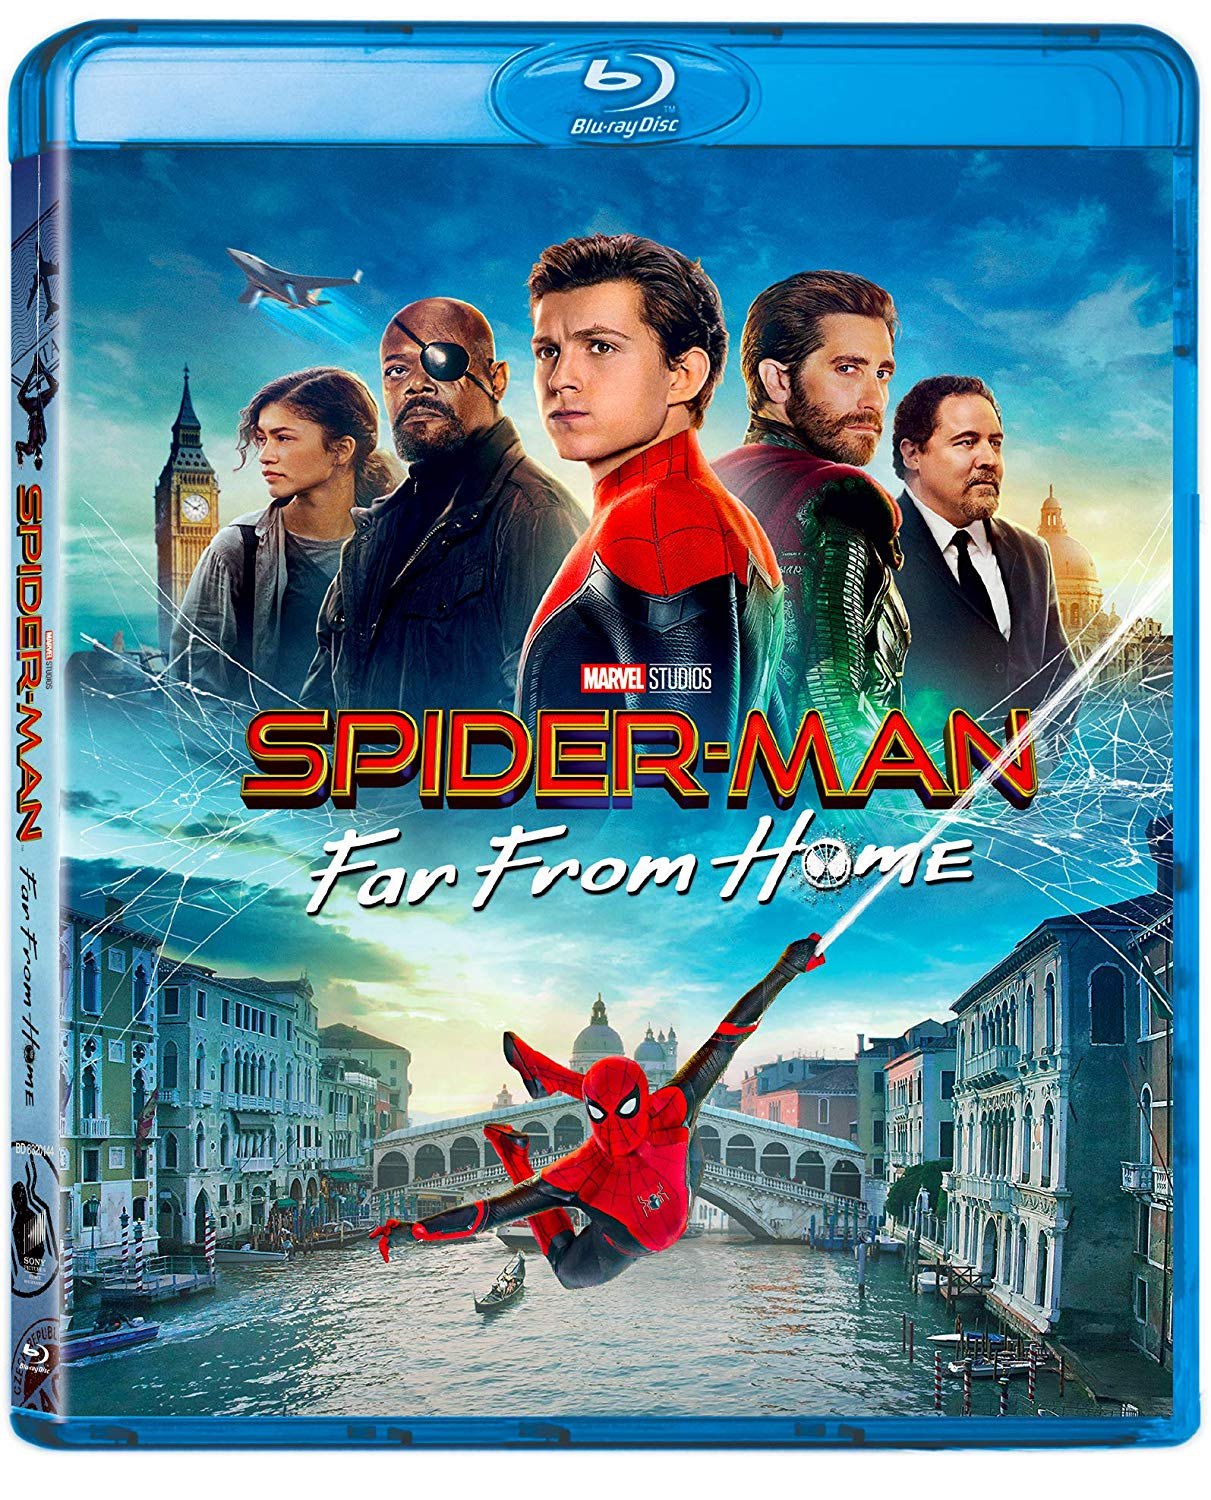 SPIDER-MAN: FAR FROM HOME - BLU RAY